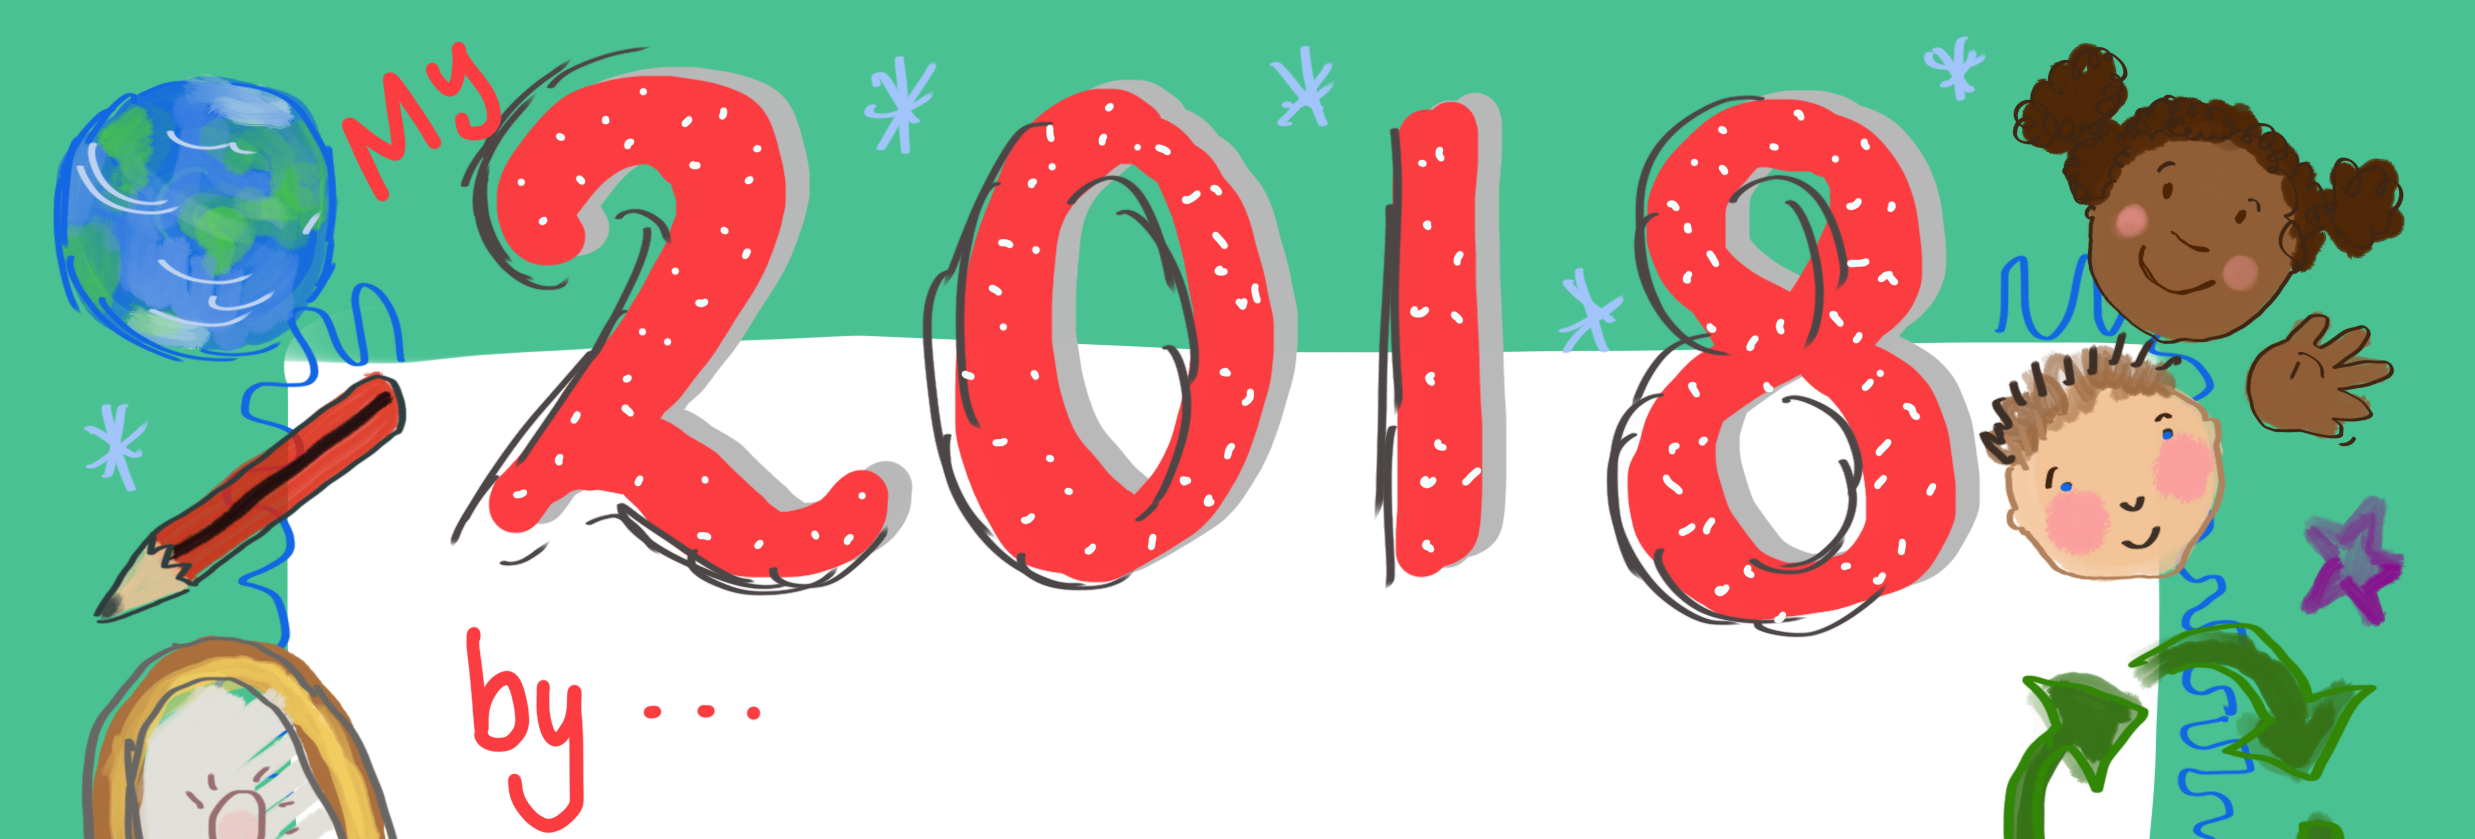 2018 resolutions banner.png